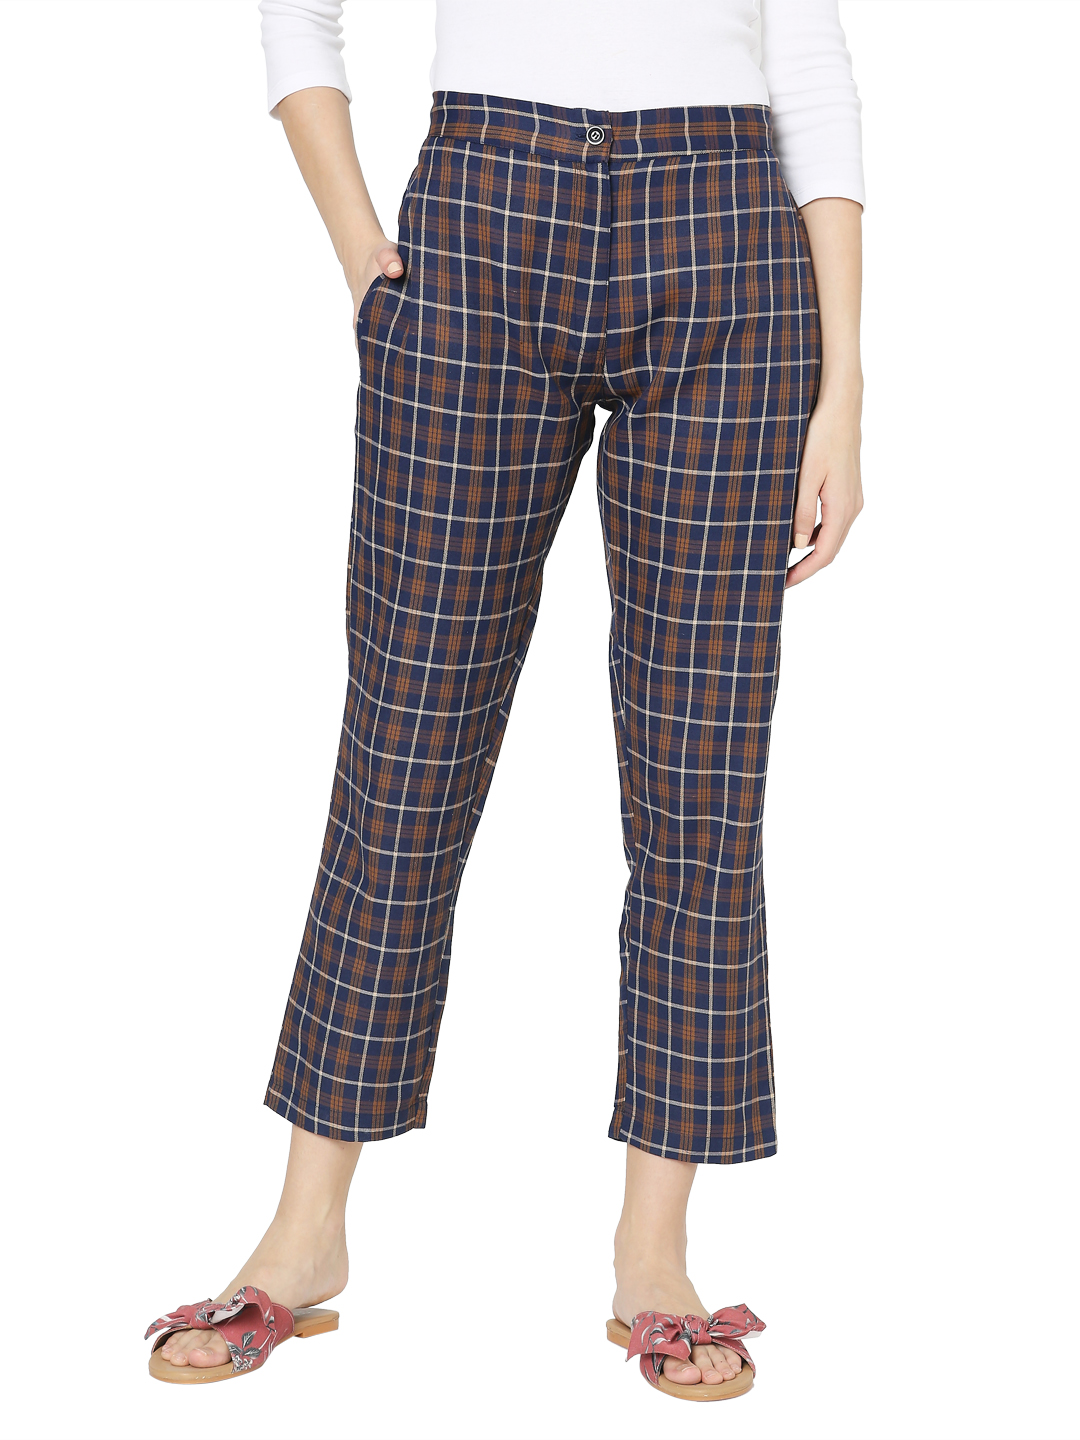 Smarty Pants   Smarty pants women's cotton brown & blue checkered ankle length tapered fit trouser